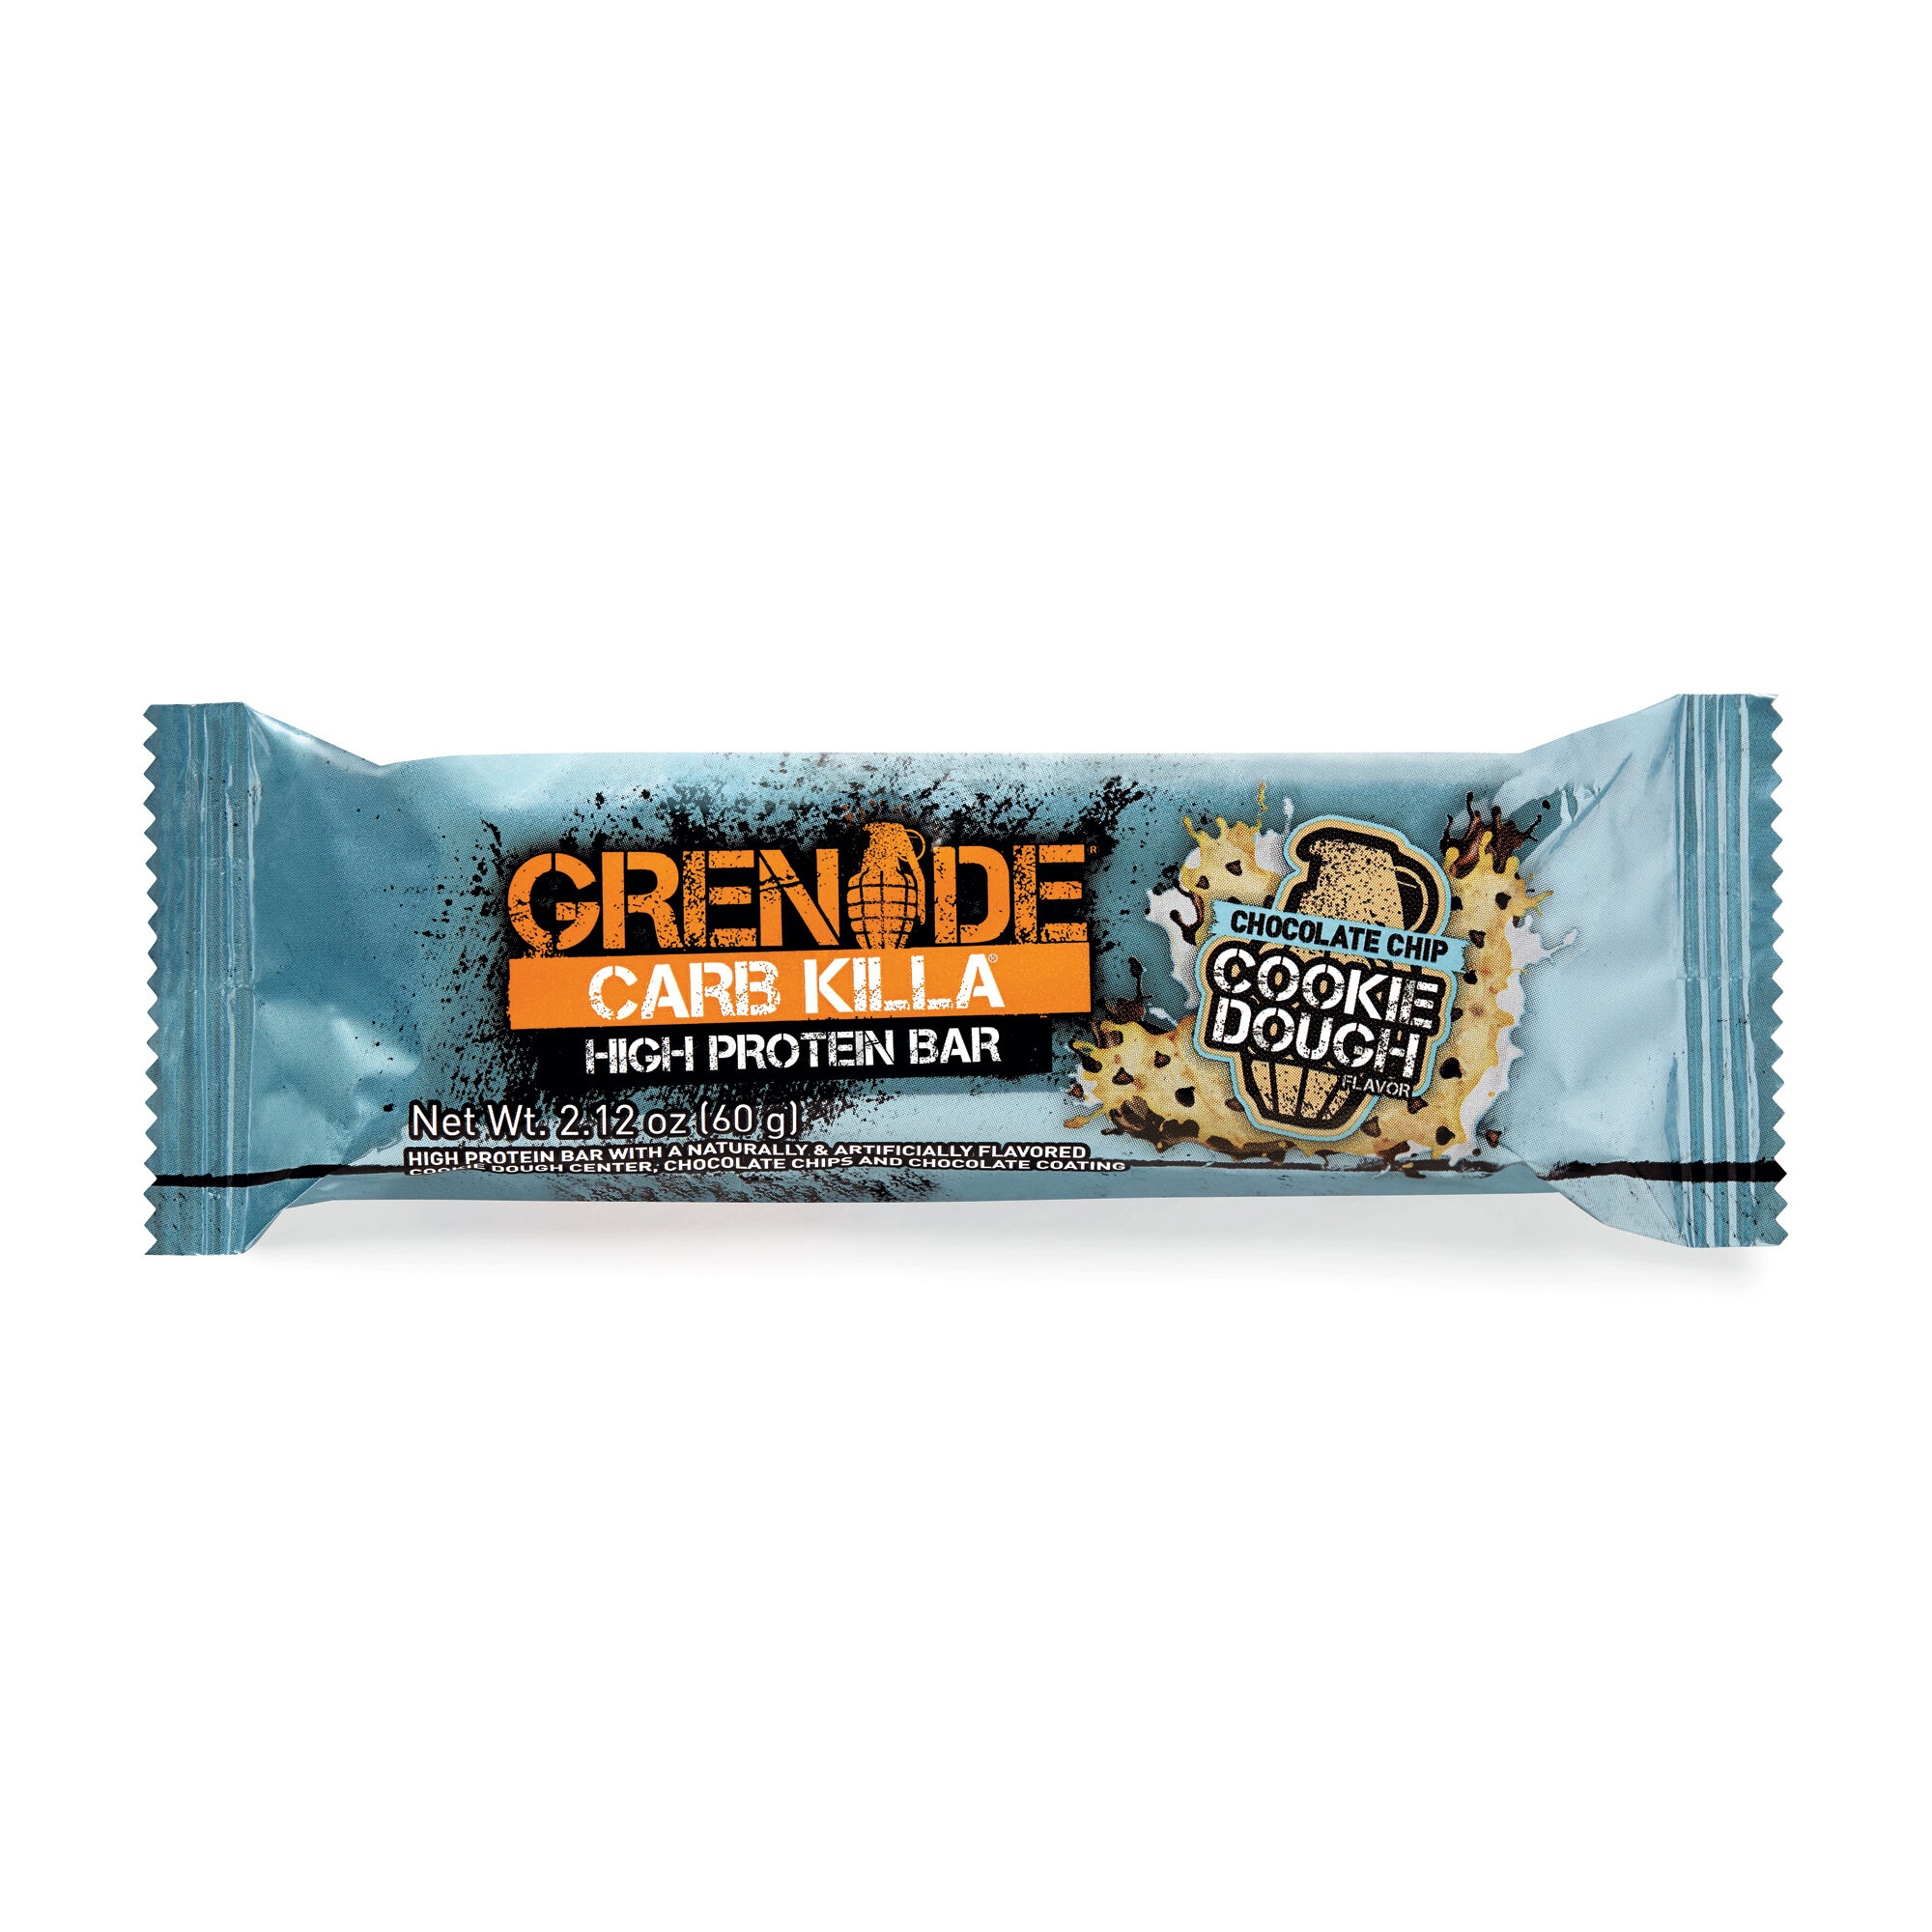 Carb KillaChocolate Chip Cookie Dough 1 Bar GrenadePre & Post Workout Bars